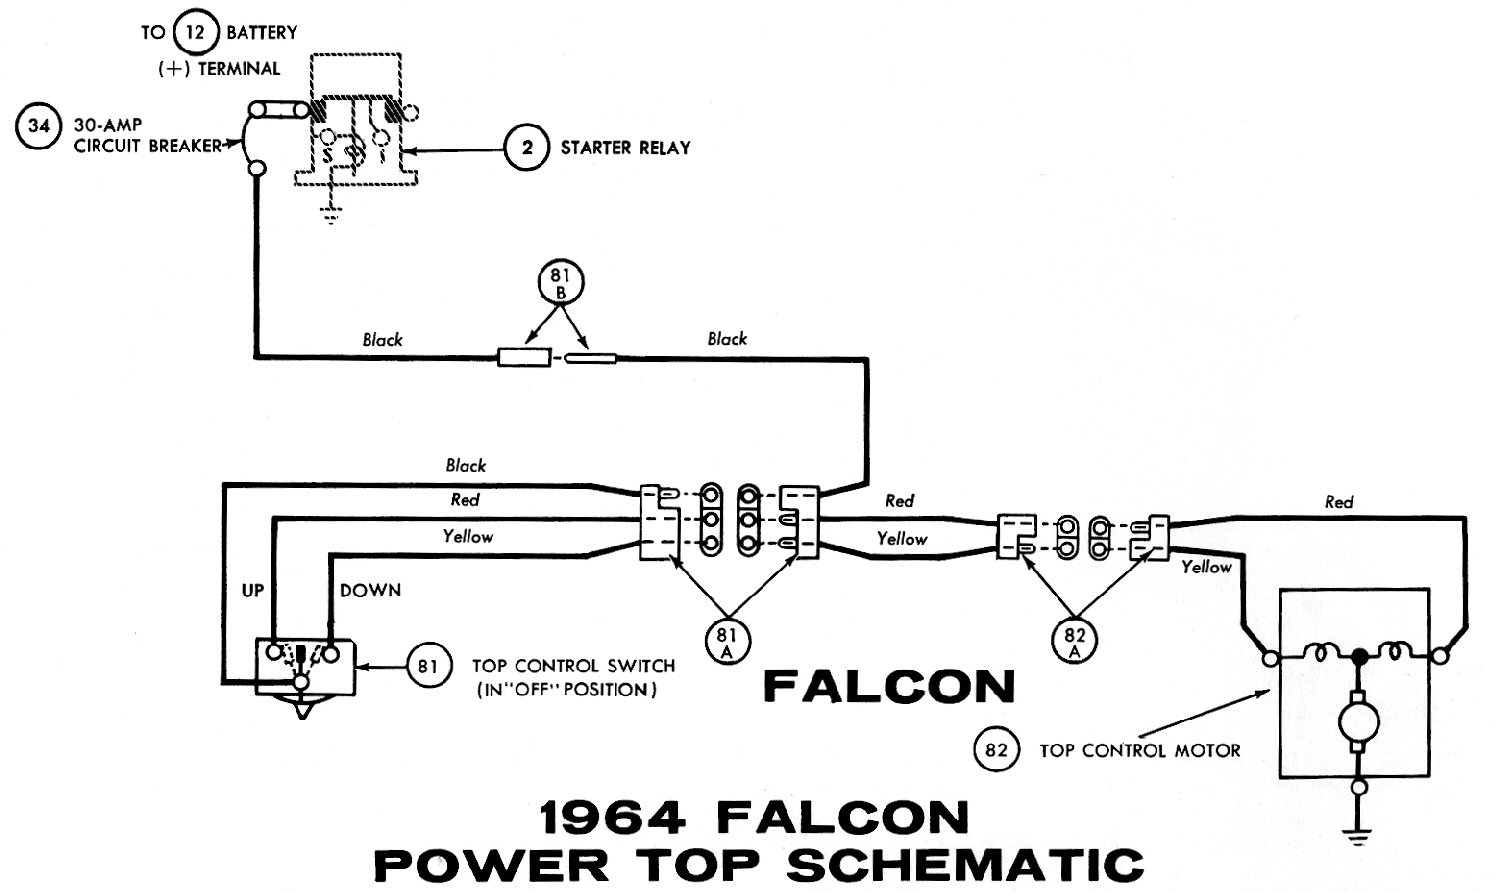 1966 ford f100 wiring schematic 1966 image wiring 1966 ford f100 wiring schematic images 1967 ford f100 wiring on 1966 ford f100 wiring schematic